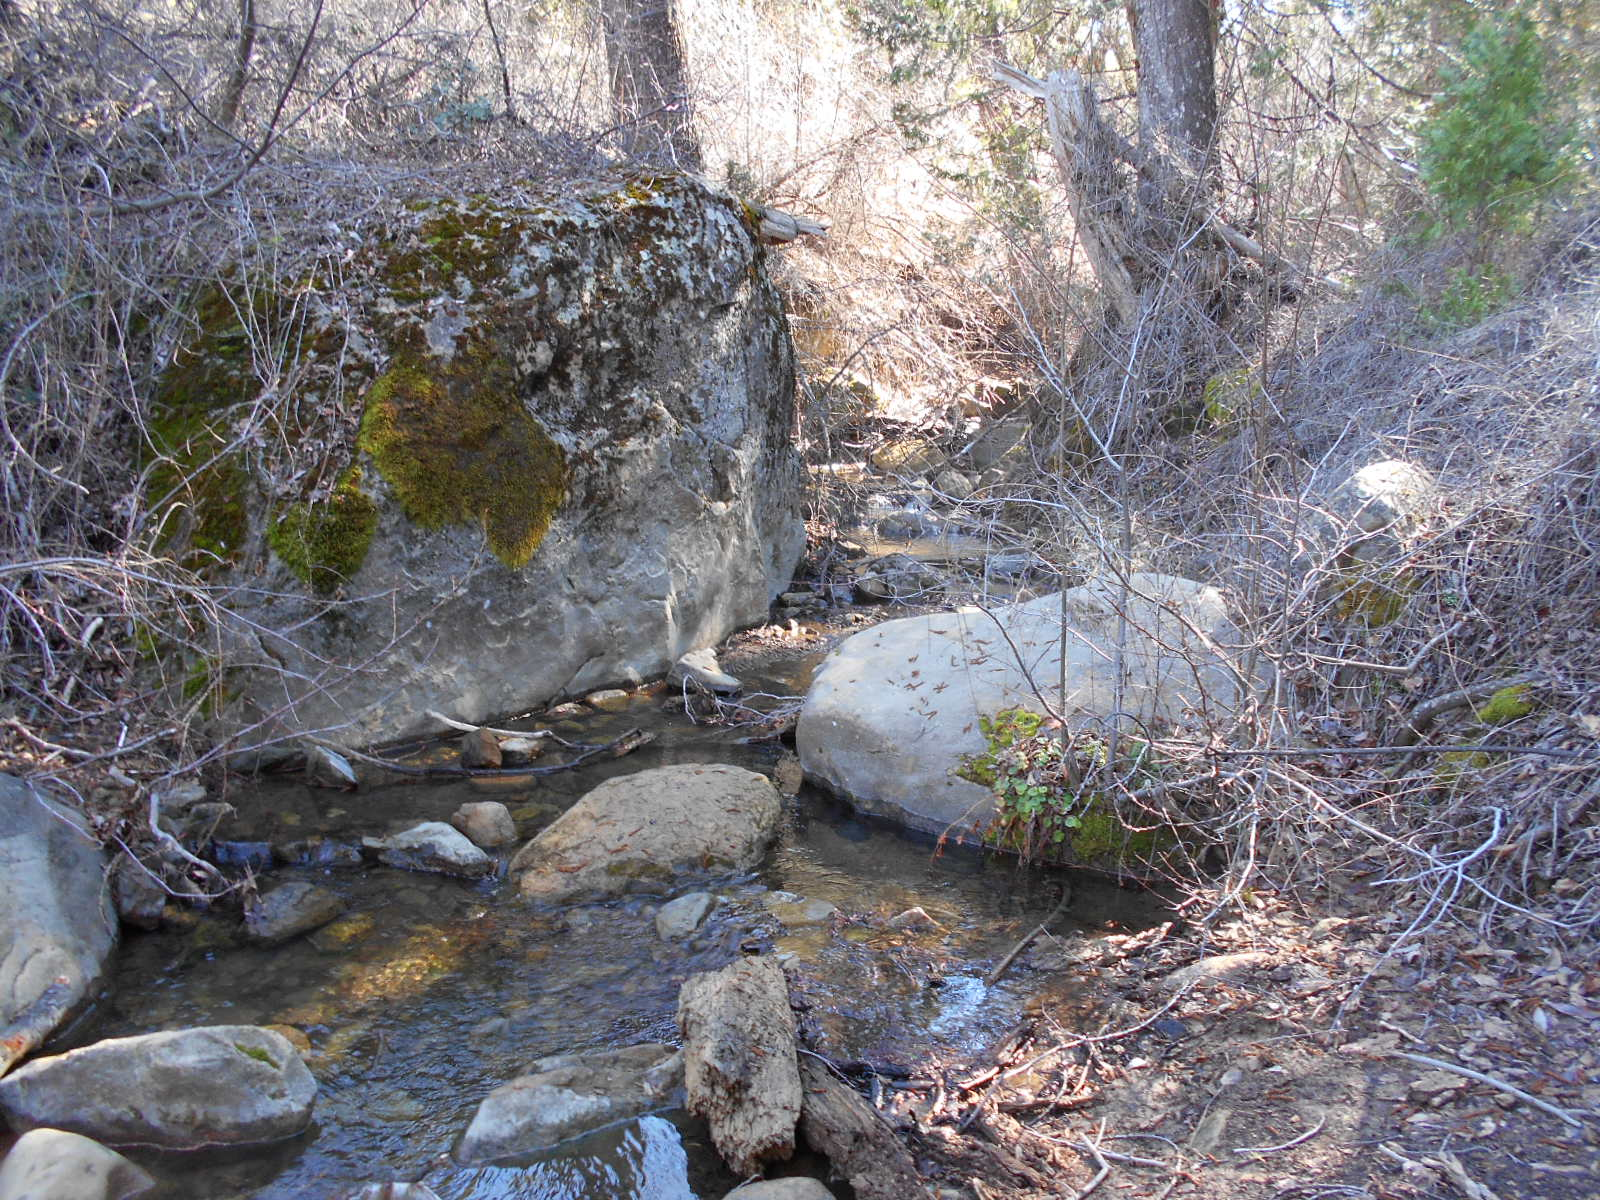 Upper Reyes Camp - Los Padres | Backpacking, Camping, MTB, OHV, and